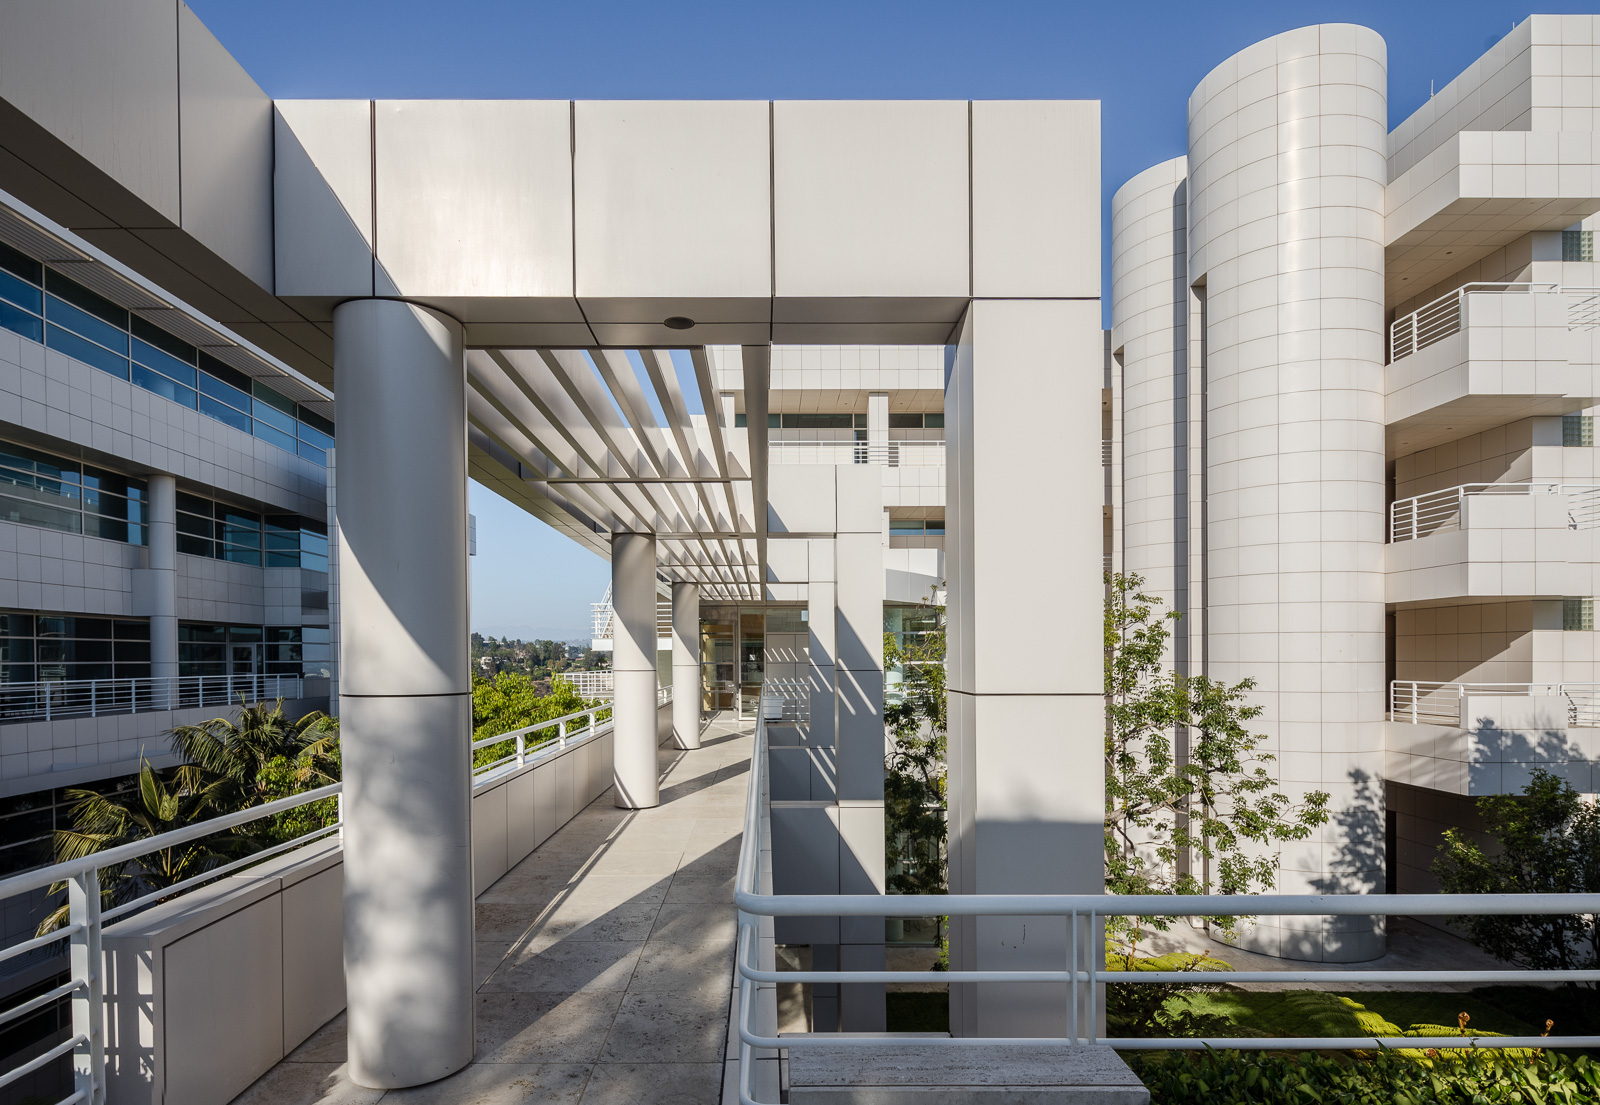 Architectural elements of the Getty Museum in California